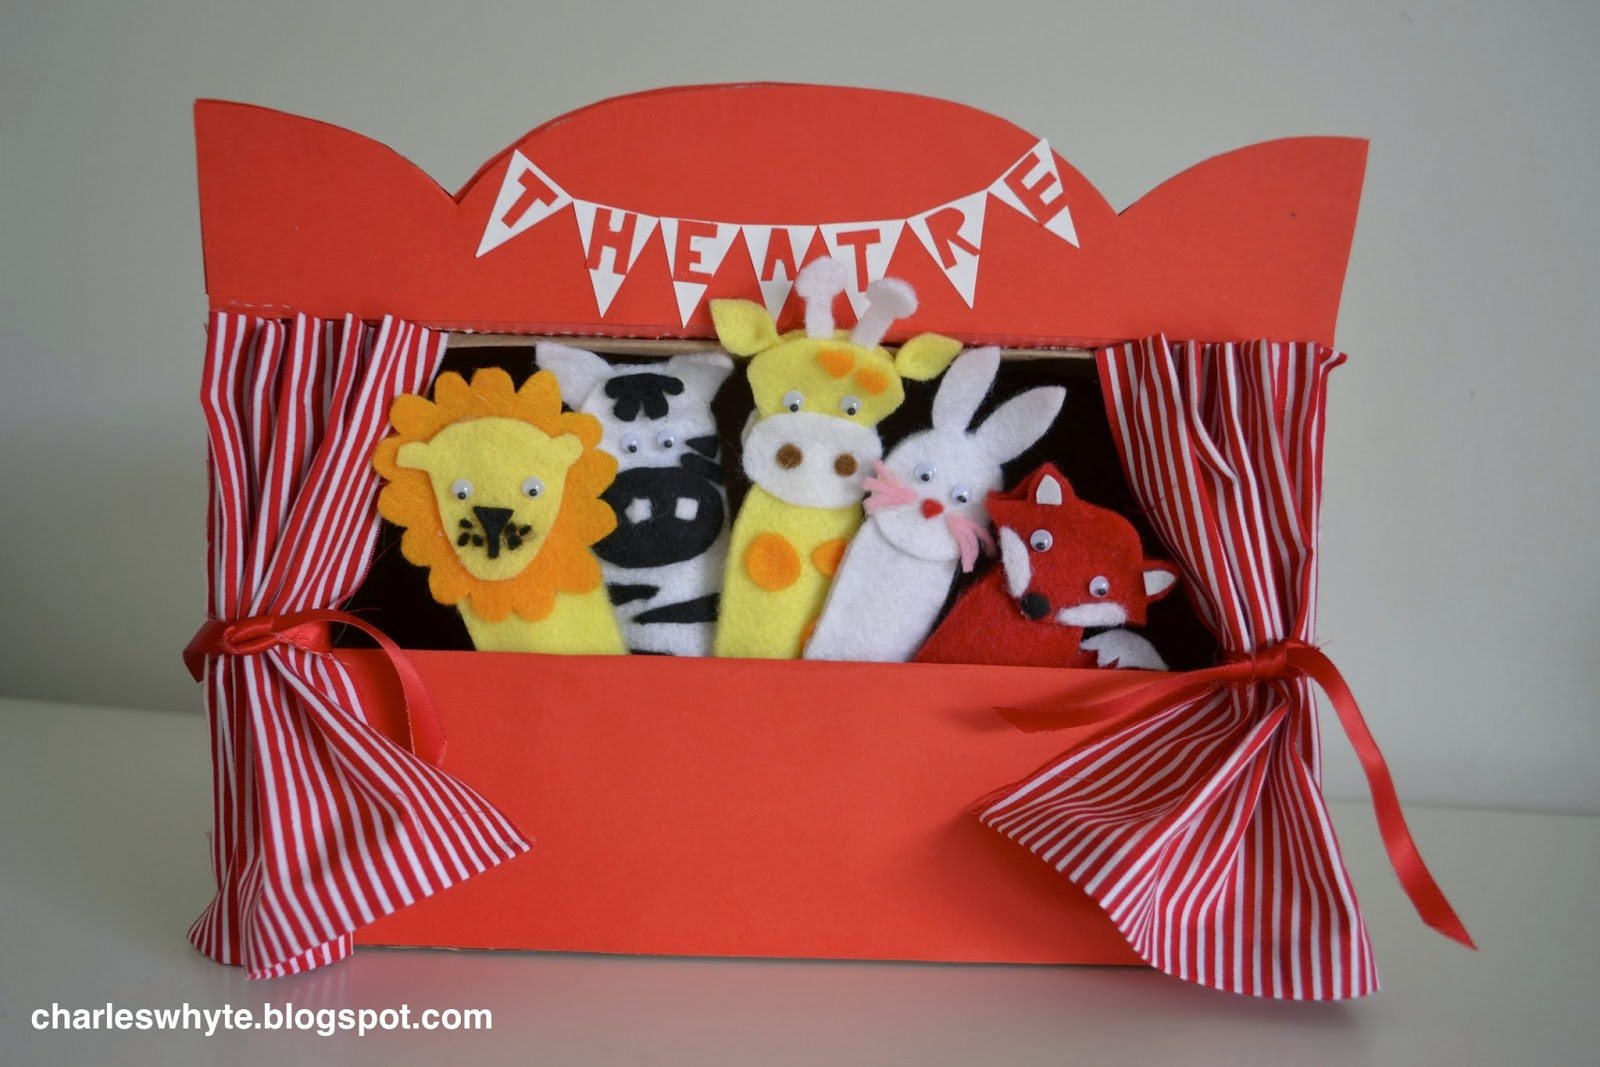 charles whyte: gifts for a newborn: diy felt finger puppets and theatre